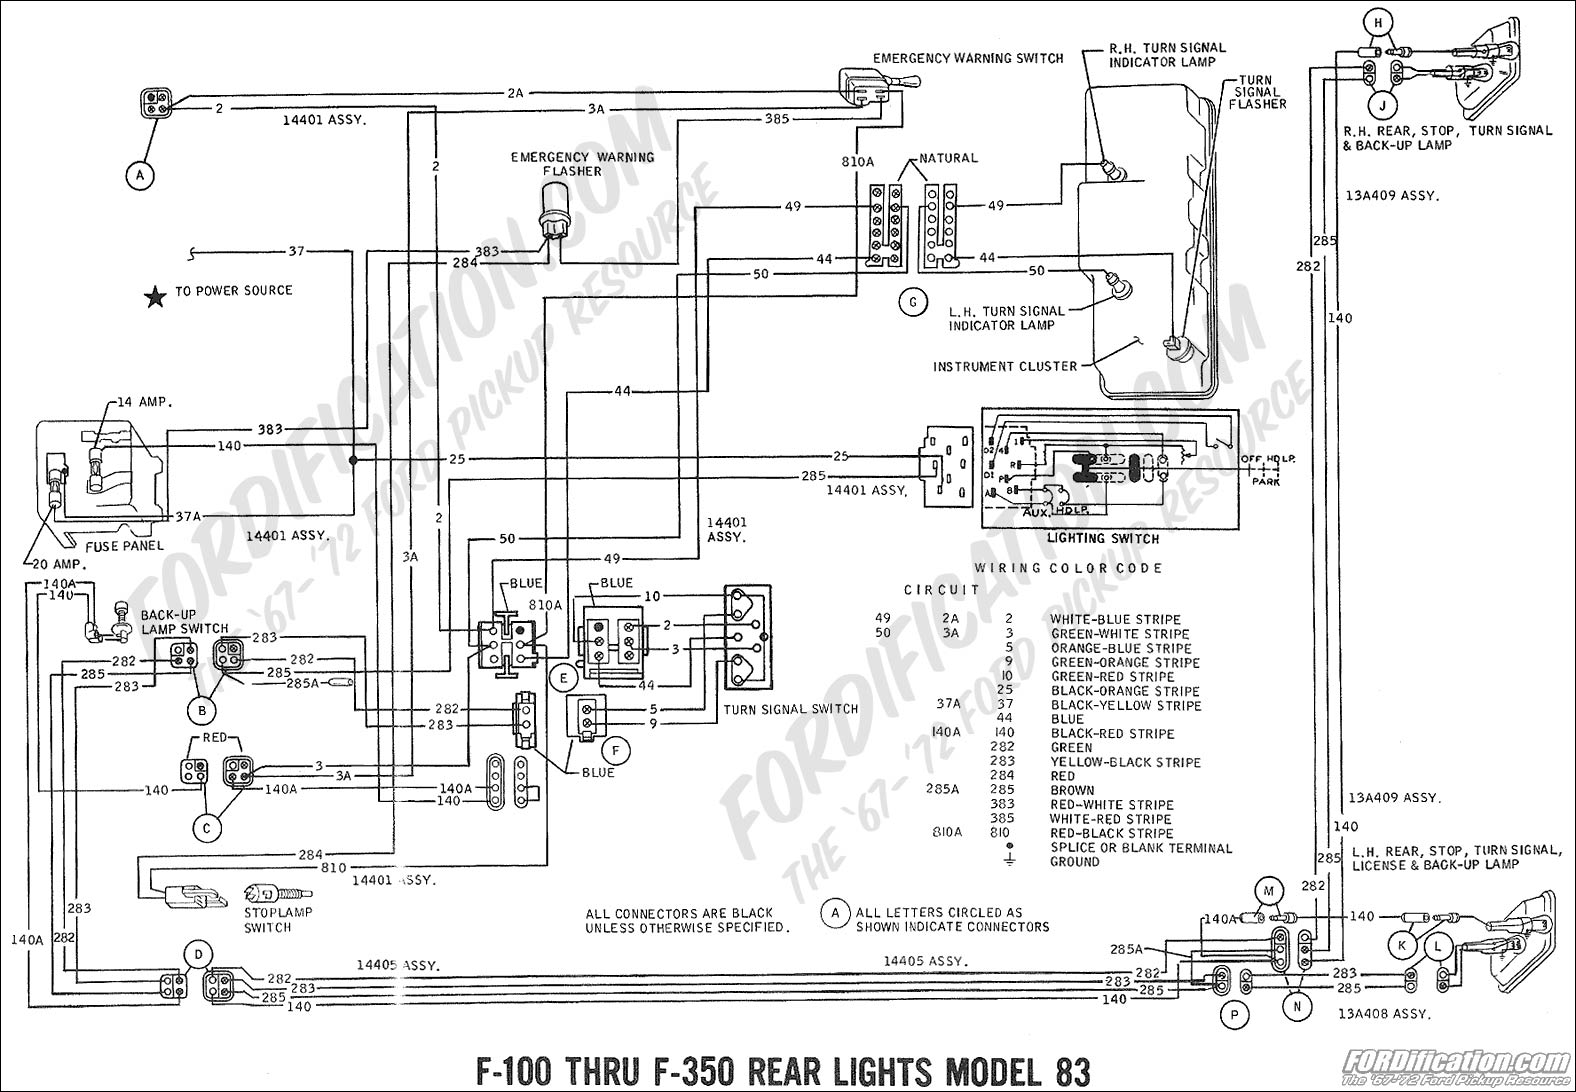 Ford truck technical drawings and schematics section h wiring 1969 f 100 f 250 rear lights model 83 02 cheapraybanclubmaster Choice Image